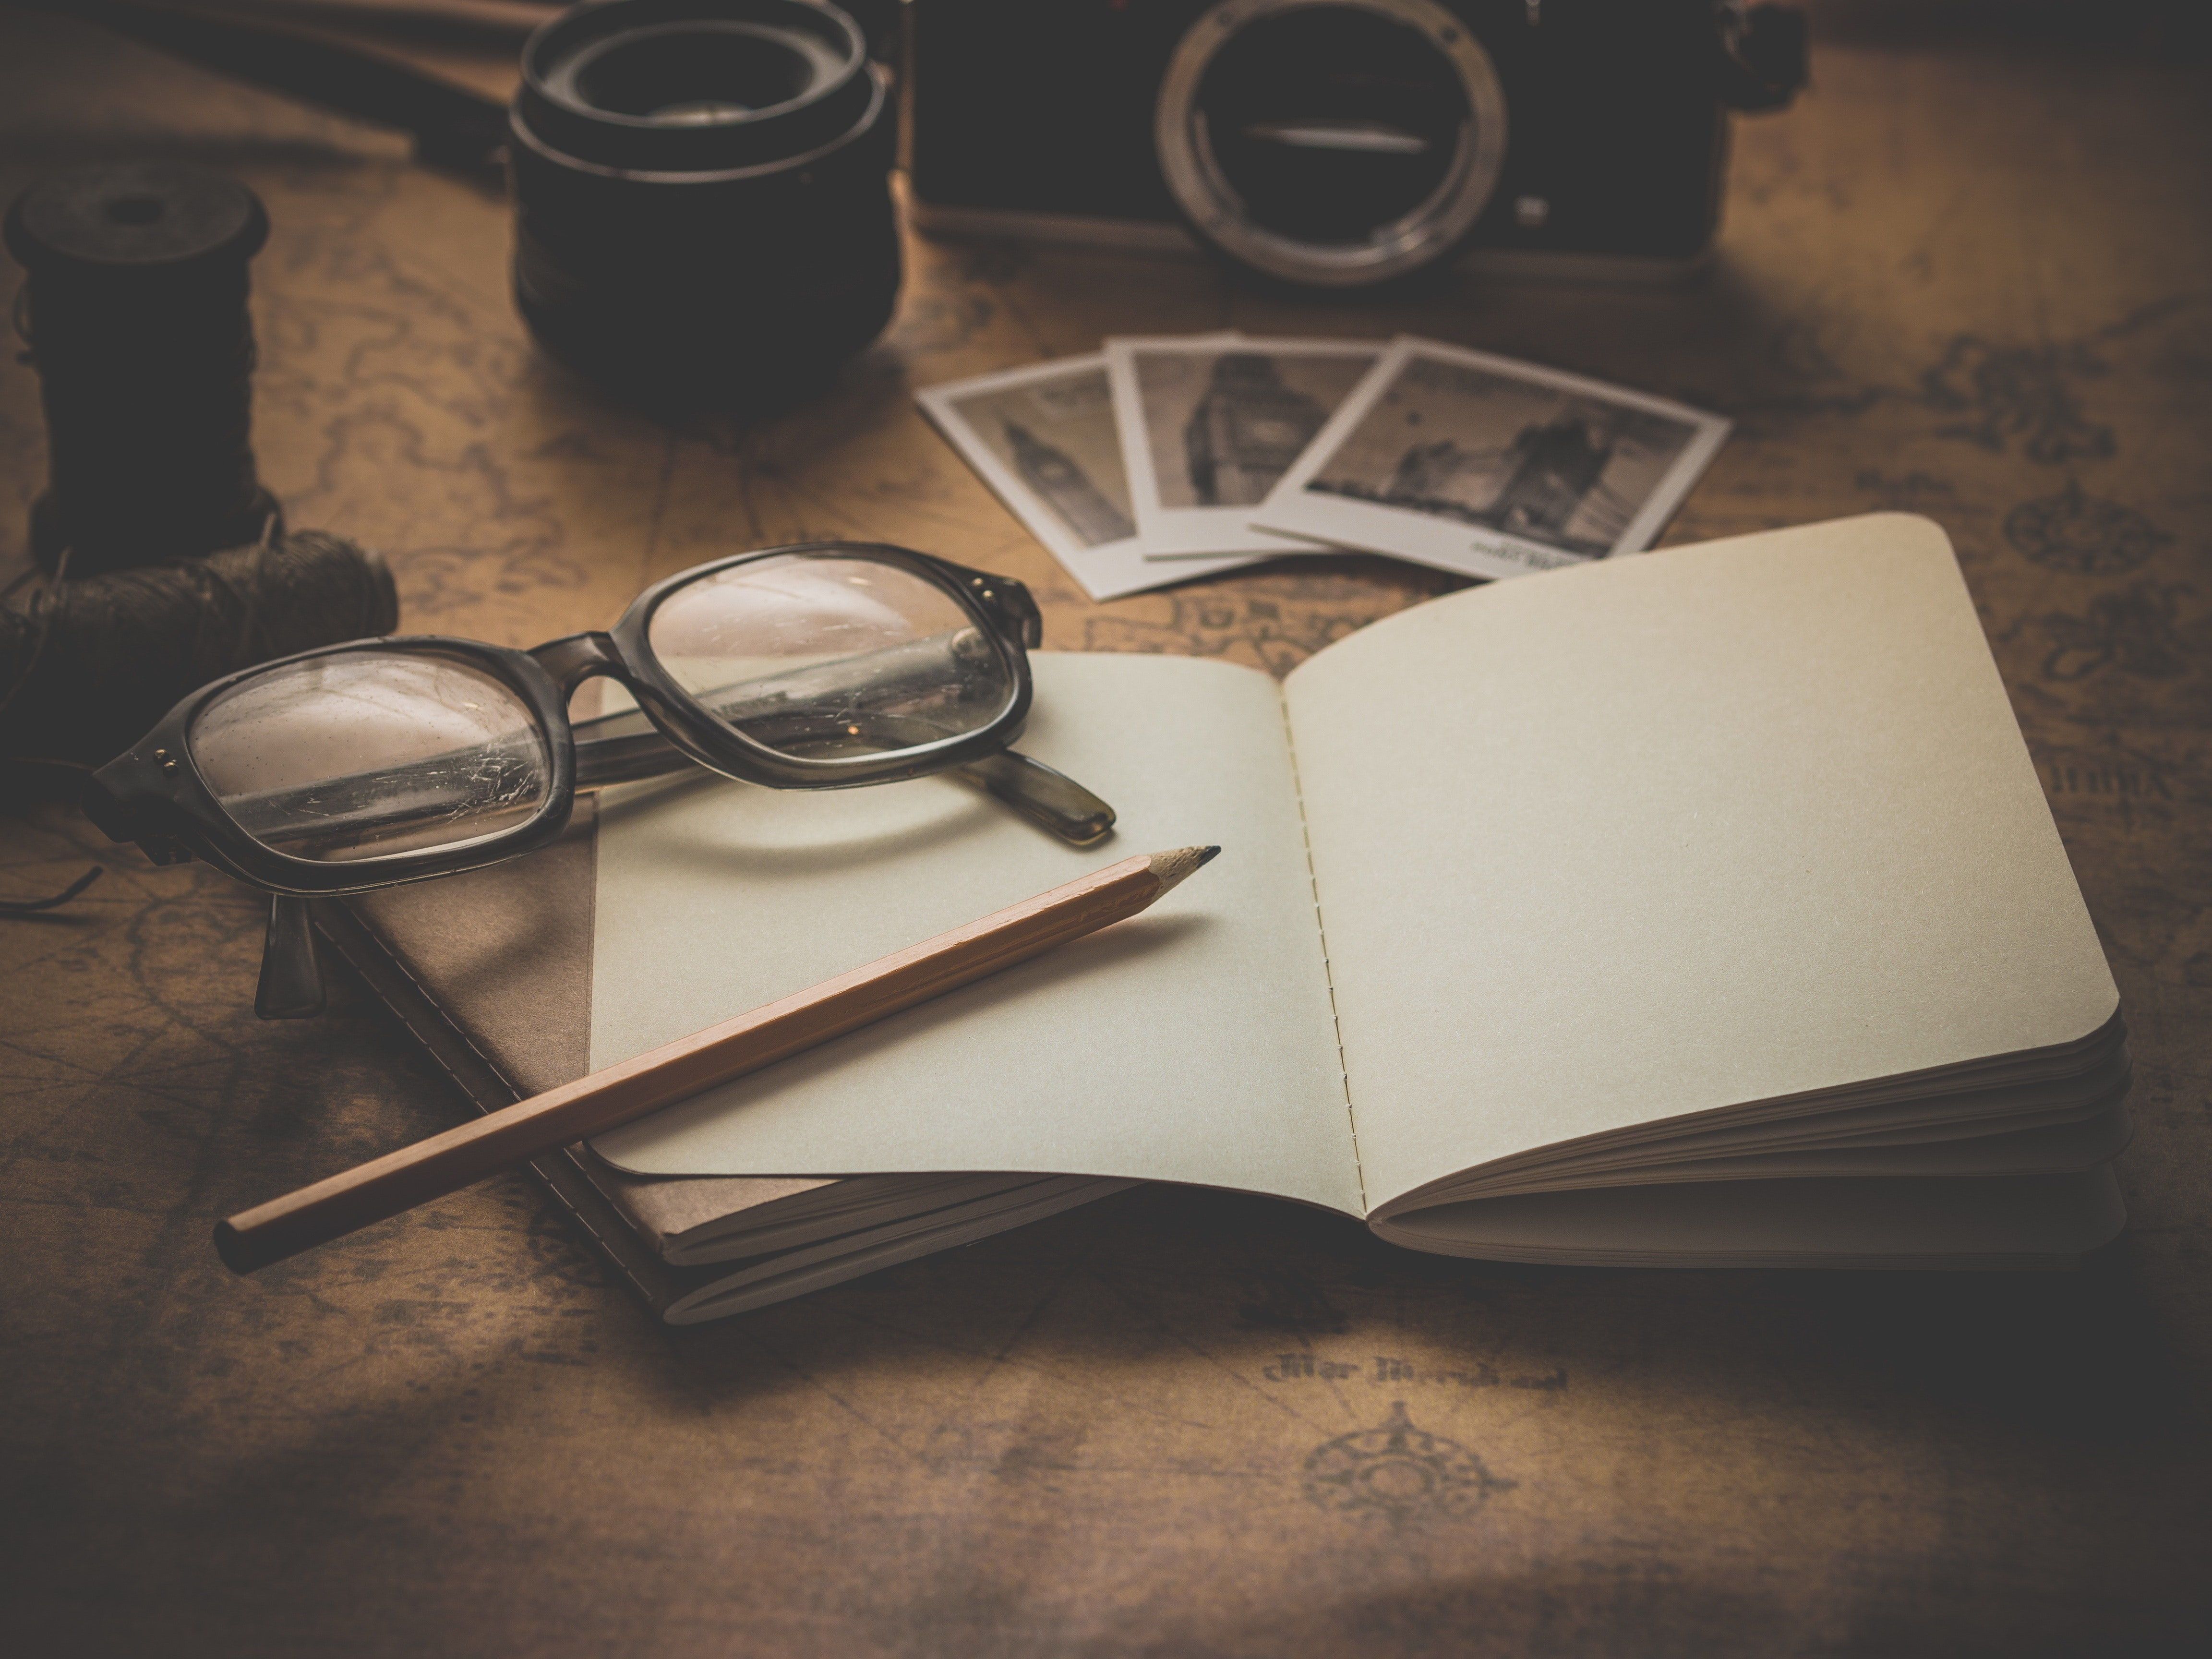 eyeglasses and pencil on book free stock photo